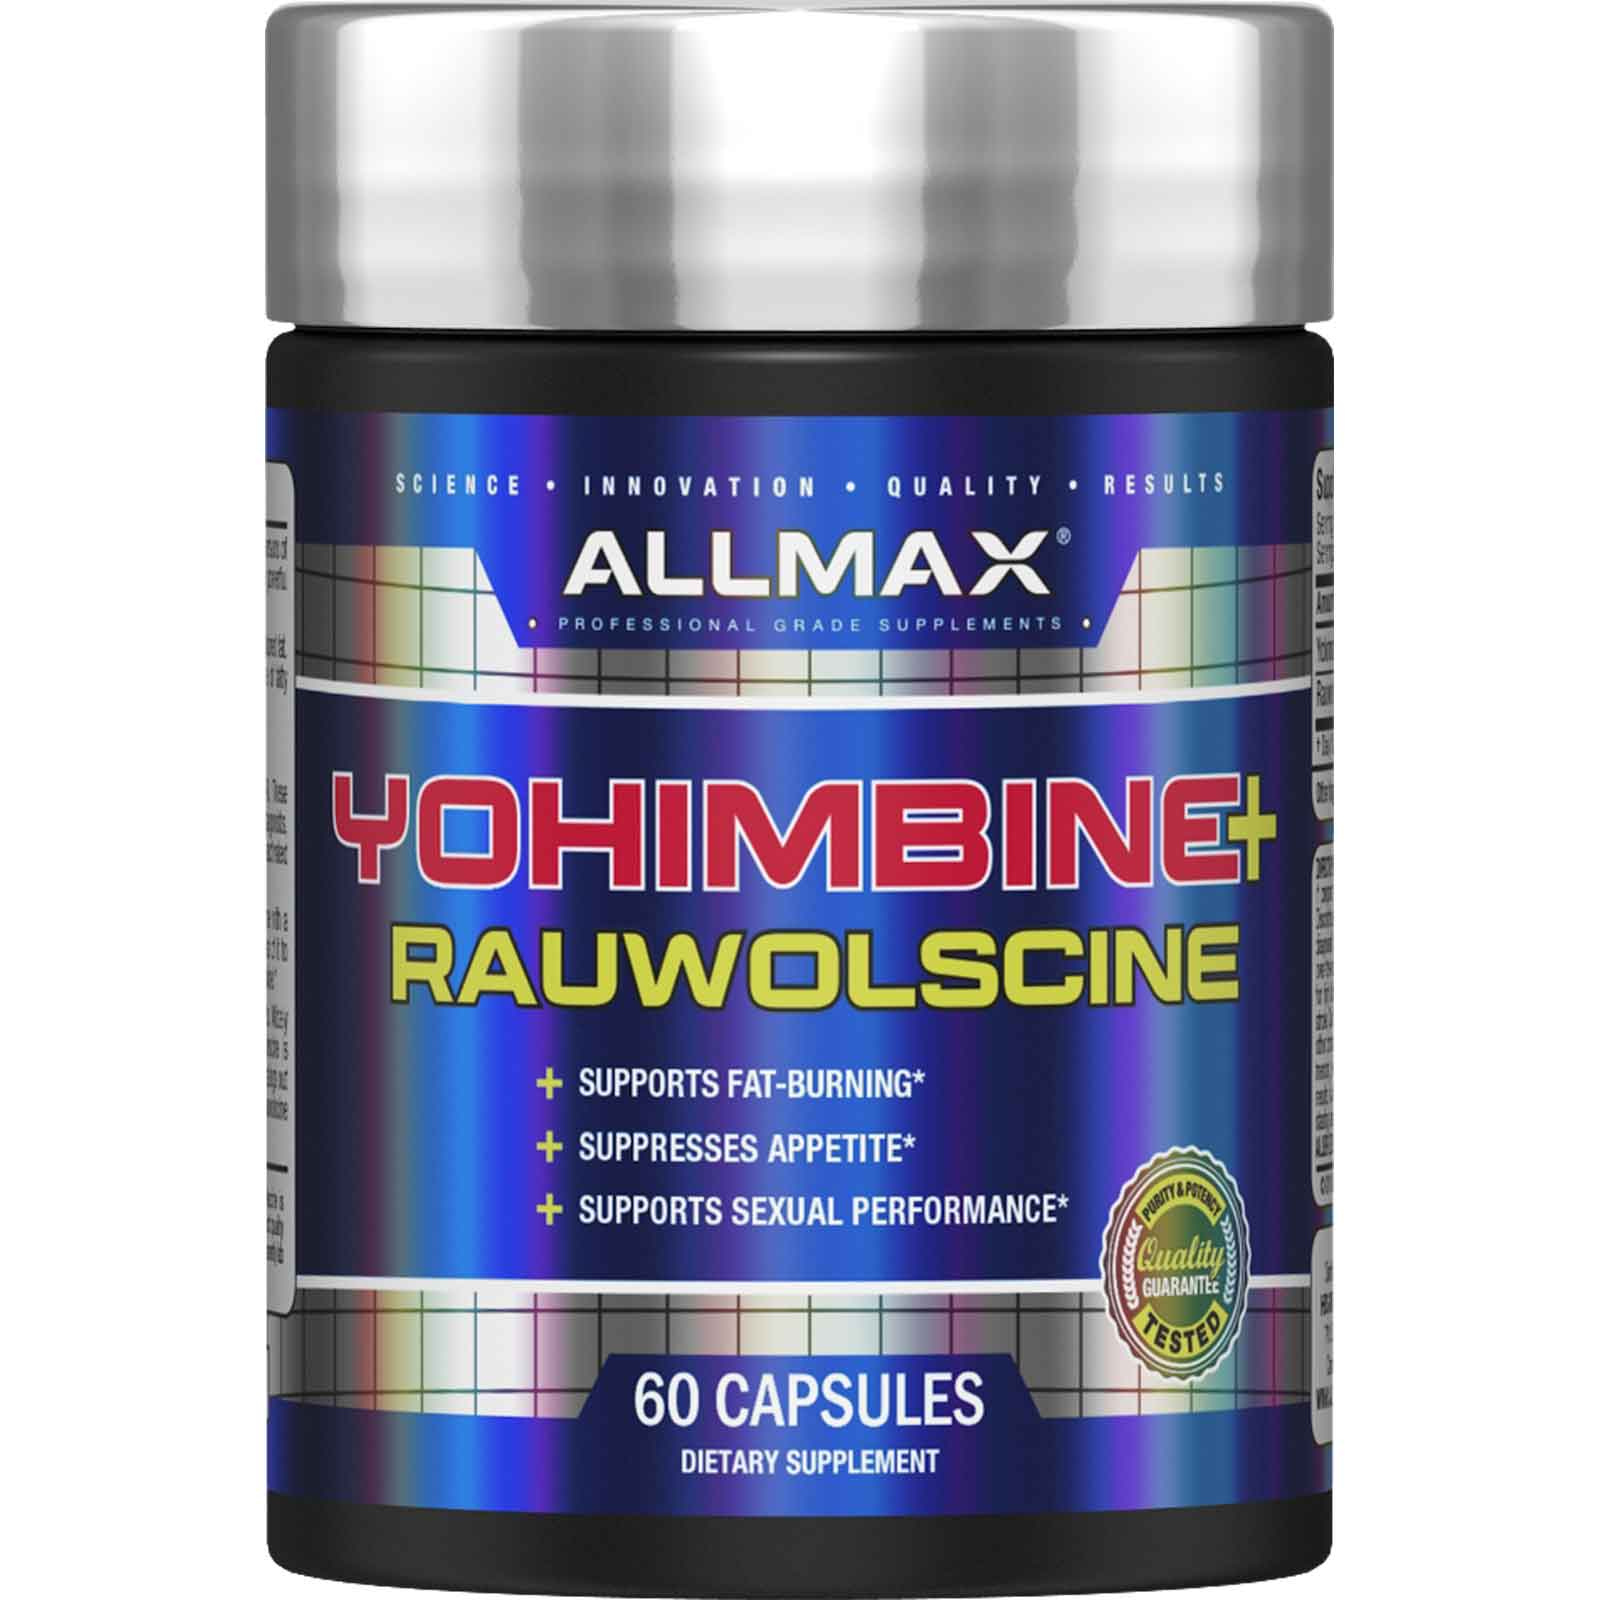 Yohimbine Hcl Kaufen Details About Allmax Nutrition Yohimbine Hcl Rauwolscine 3 Mg 60 Capsules